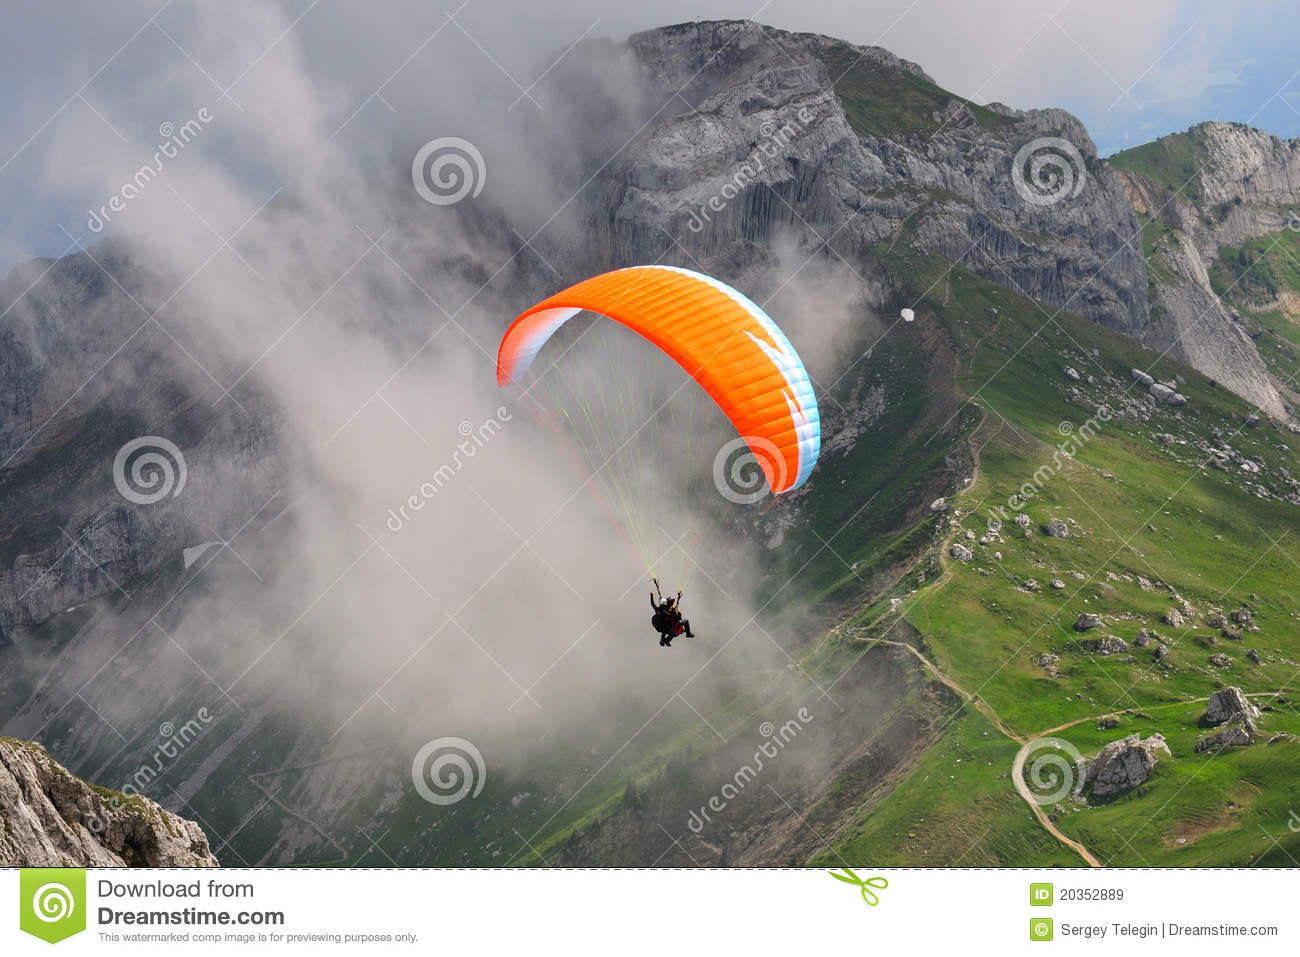 Paragliding at Pilatus mountain, Switzerland